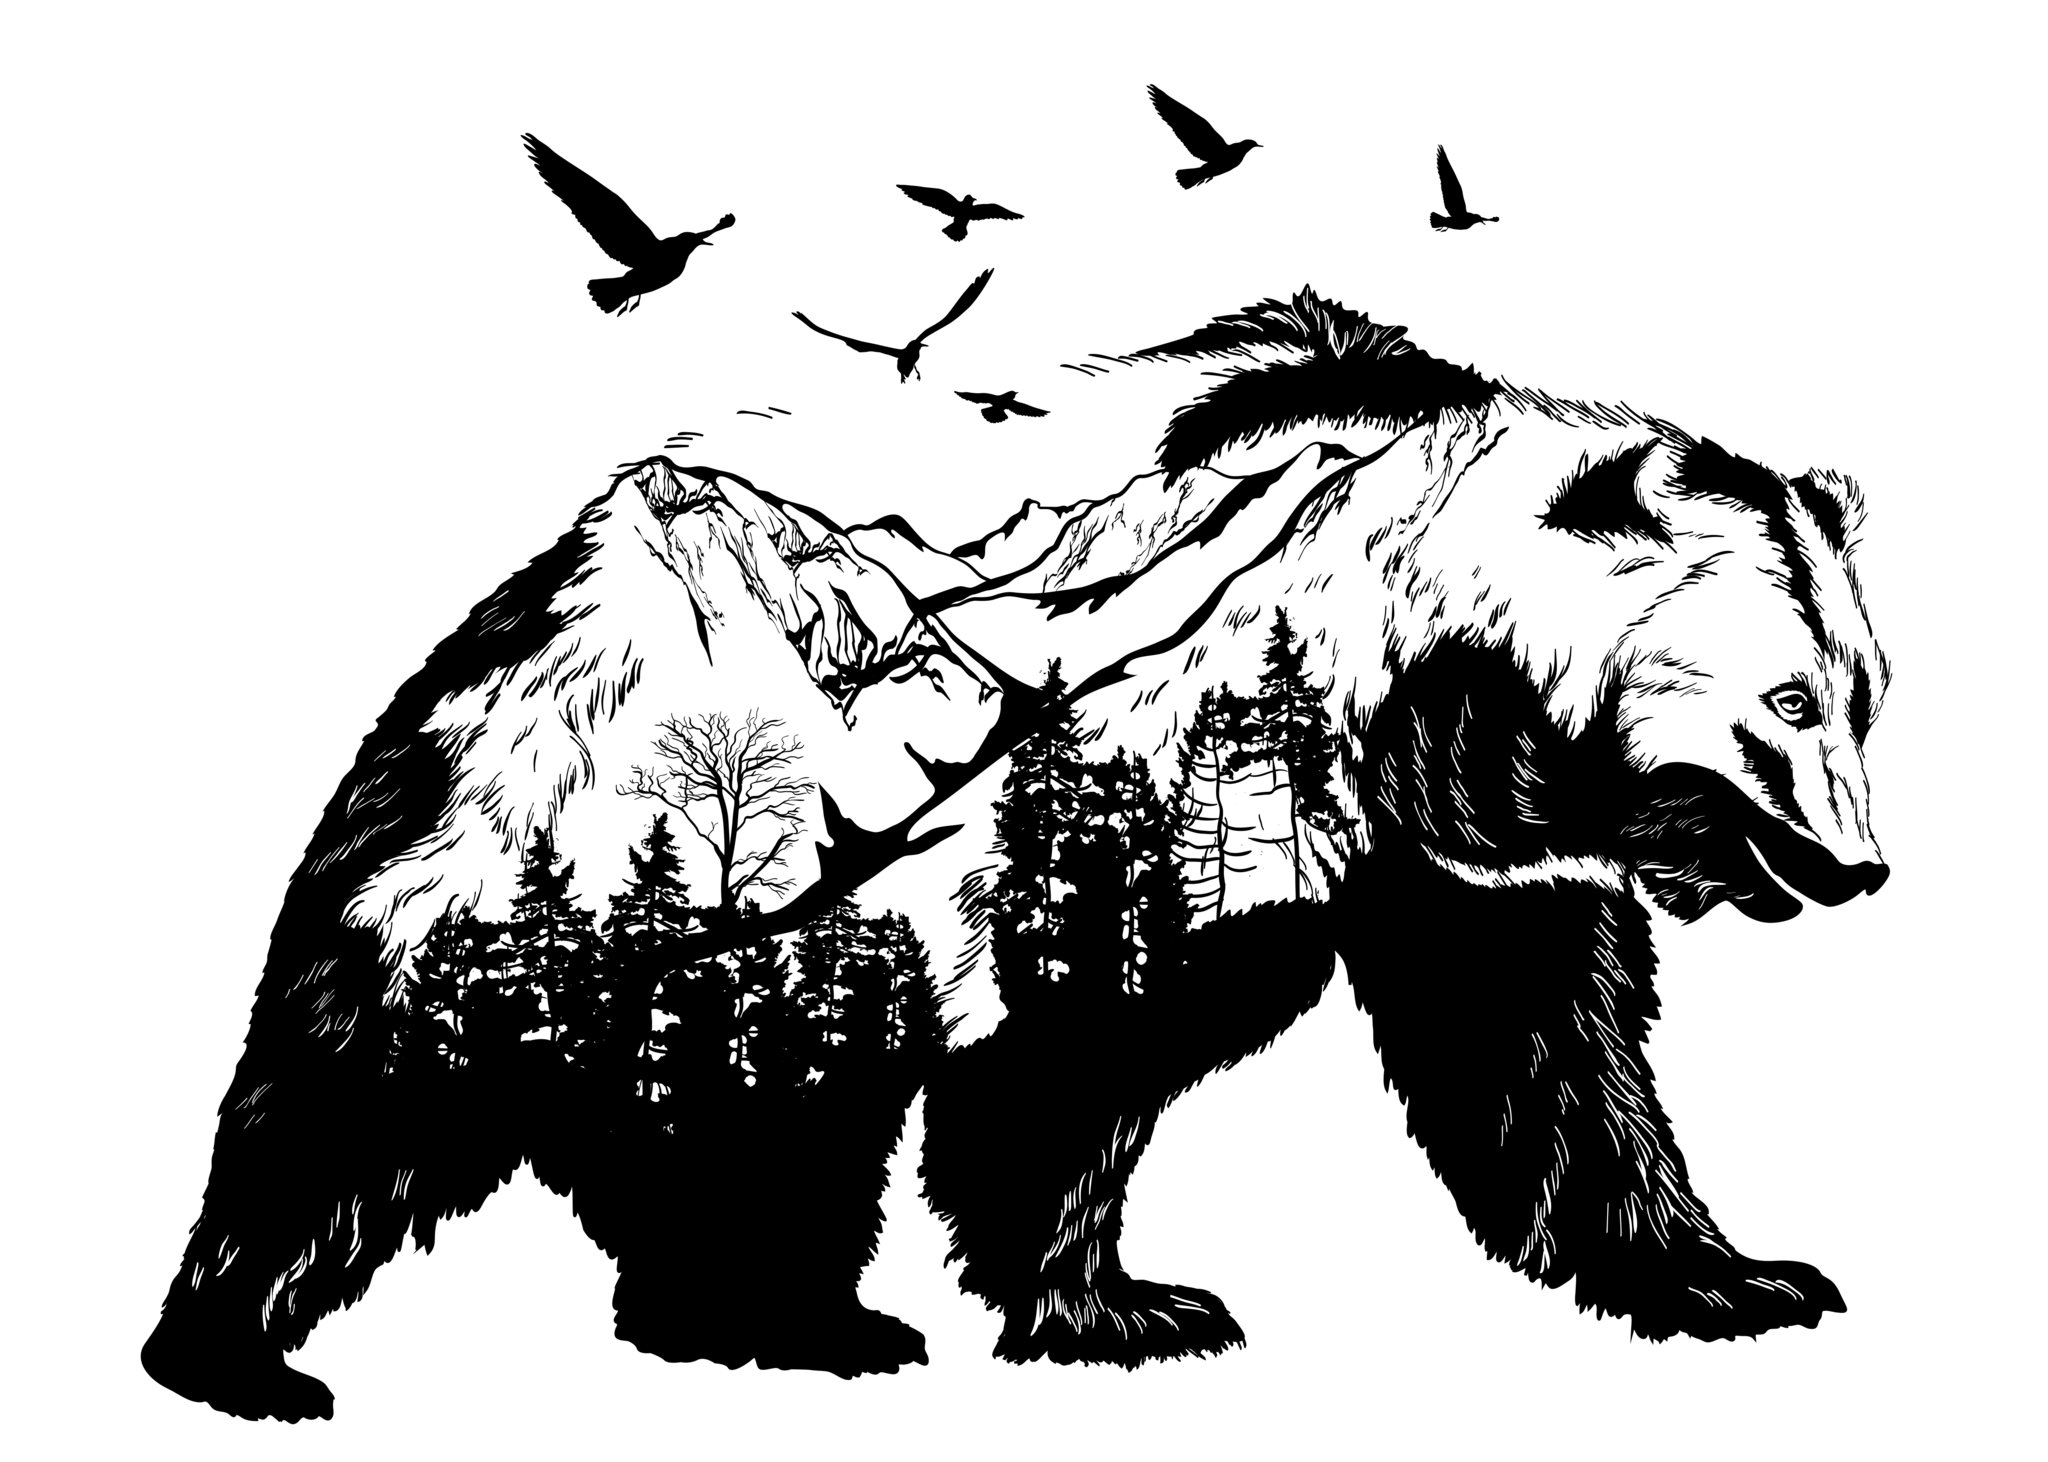 Bear scene clipart vector royalty free library Black Bear with Mountain Scene vector royalty free library